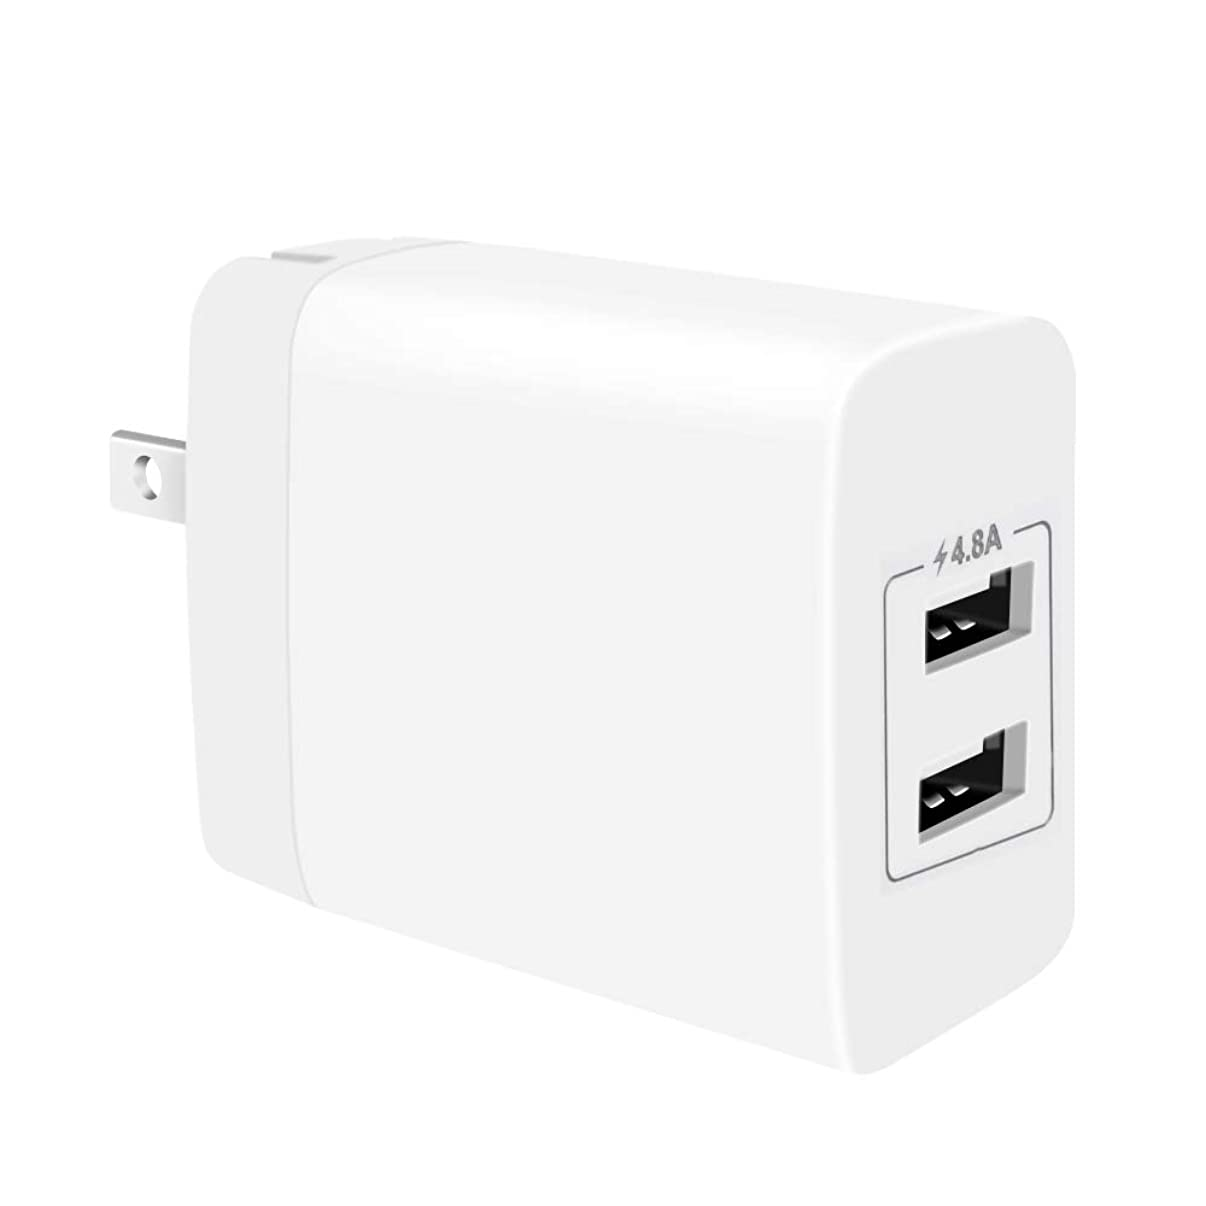 FIT-POWER 24W 2.4A Dual USB Wall Charger, Smart 2 Port 4.8A Output USB Adapter Charger with Foldable Plug for iphone X/XR/Xs/Xs Max/8/8 Plus/7/7 Plus/6/6s/6 Plus/6s Plus/5/SE/4, ipad Pro/Mini/Mini2